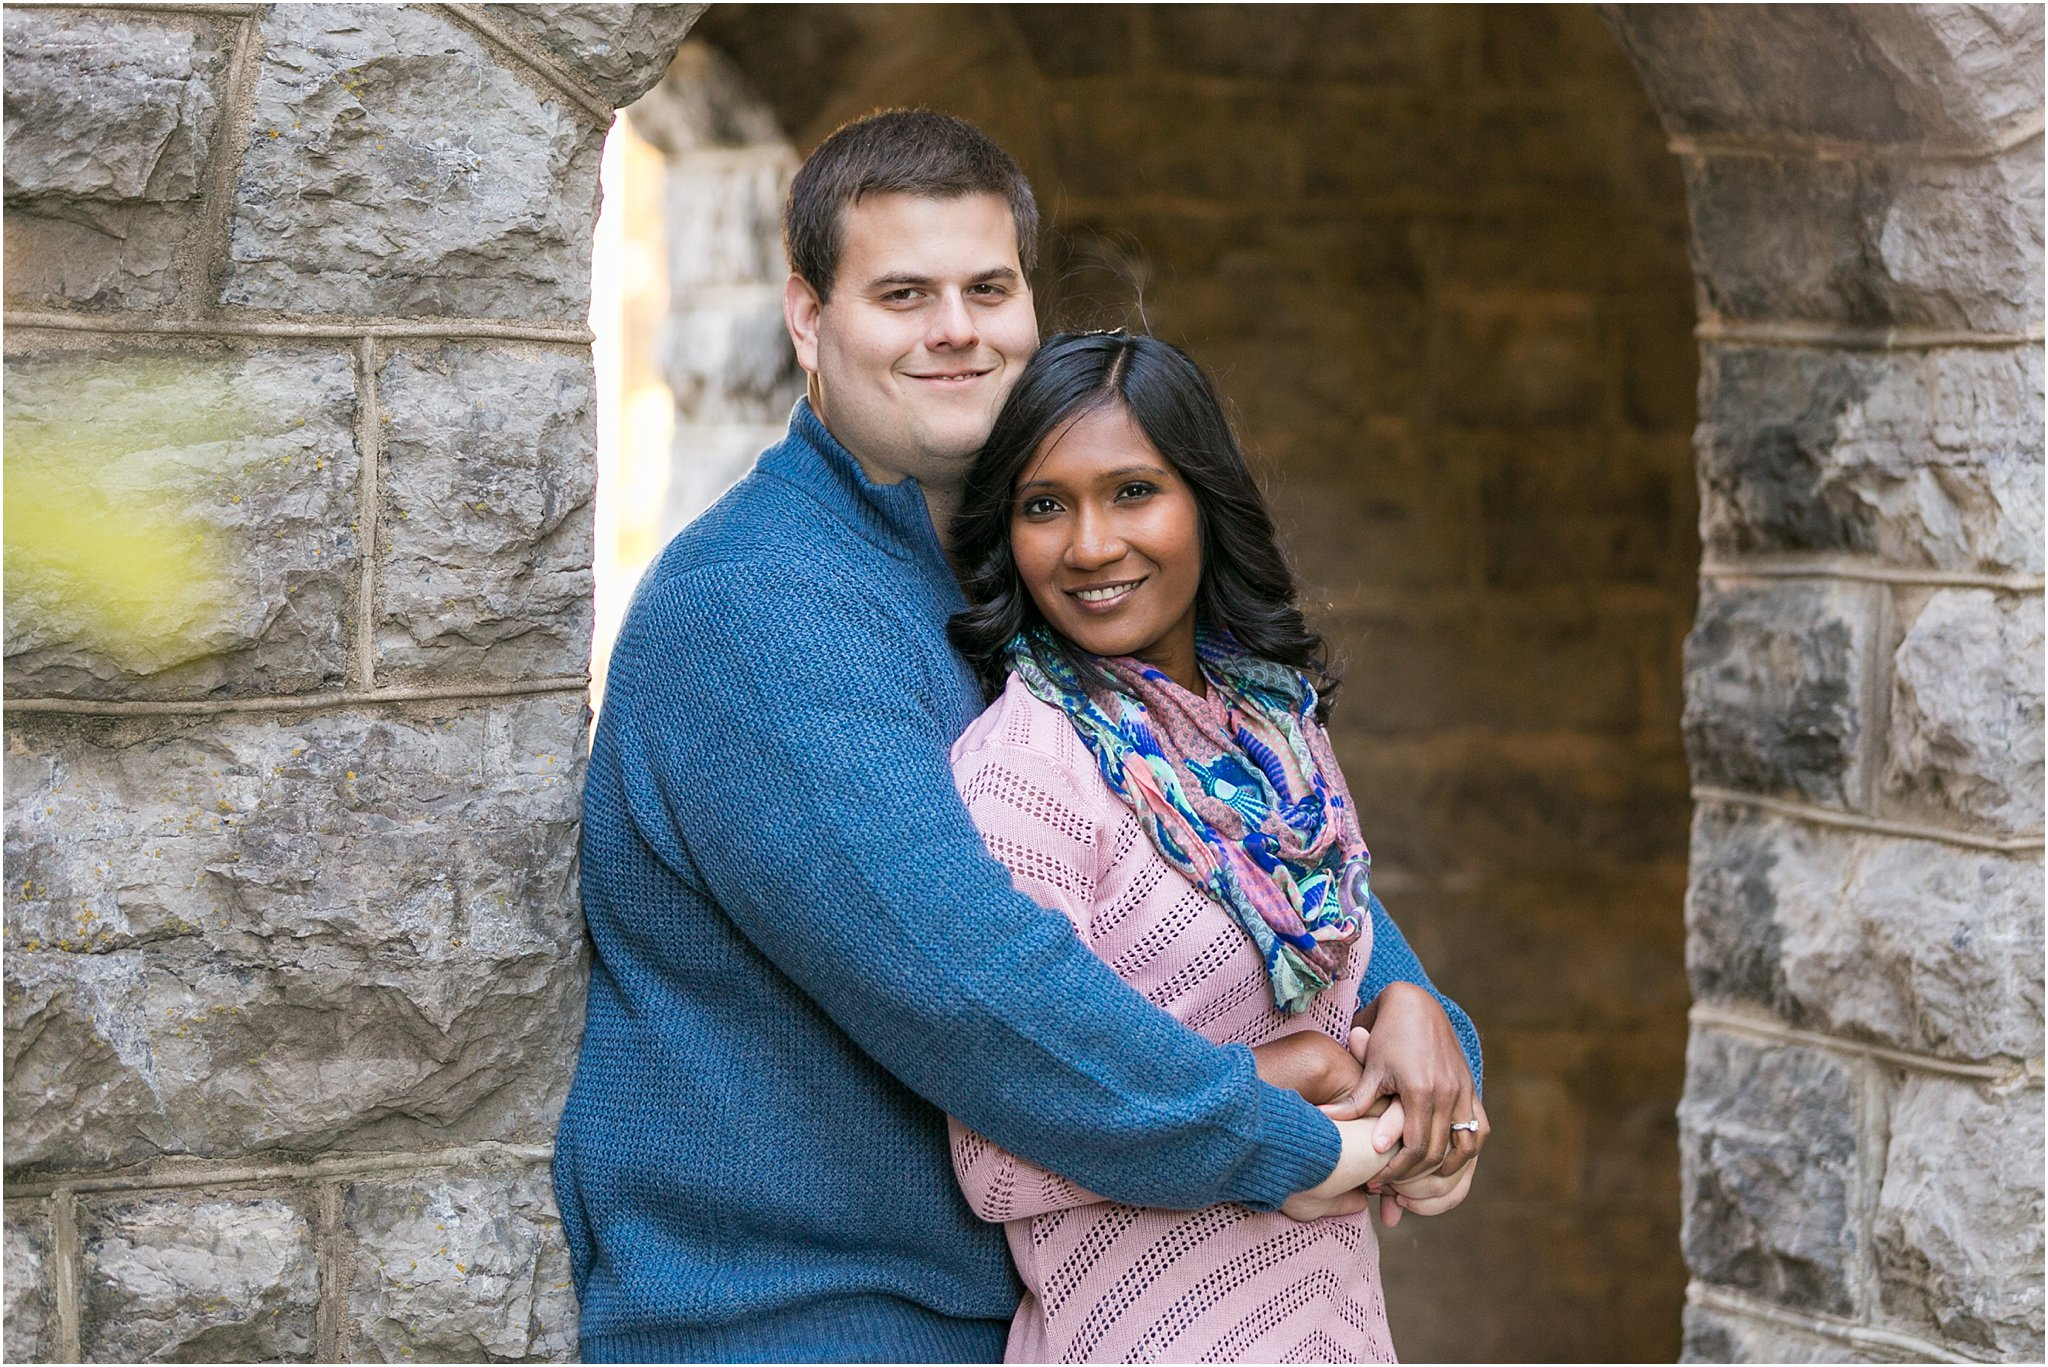 jessica_ryan_photography_engagement_virginia_tech_university_hokies_virginia_0587